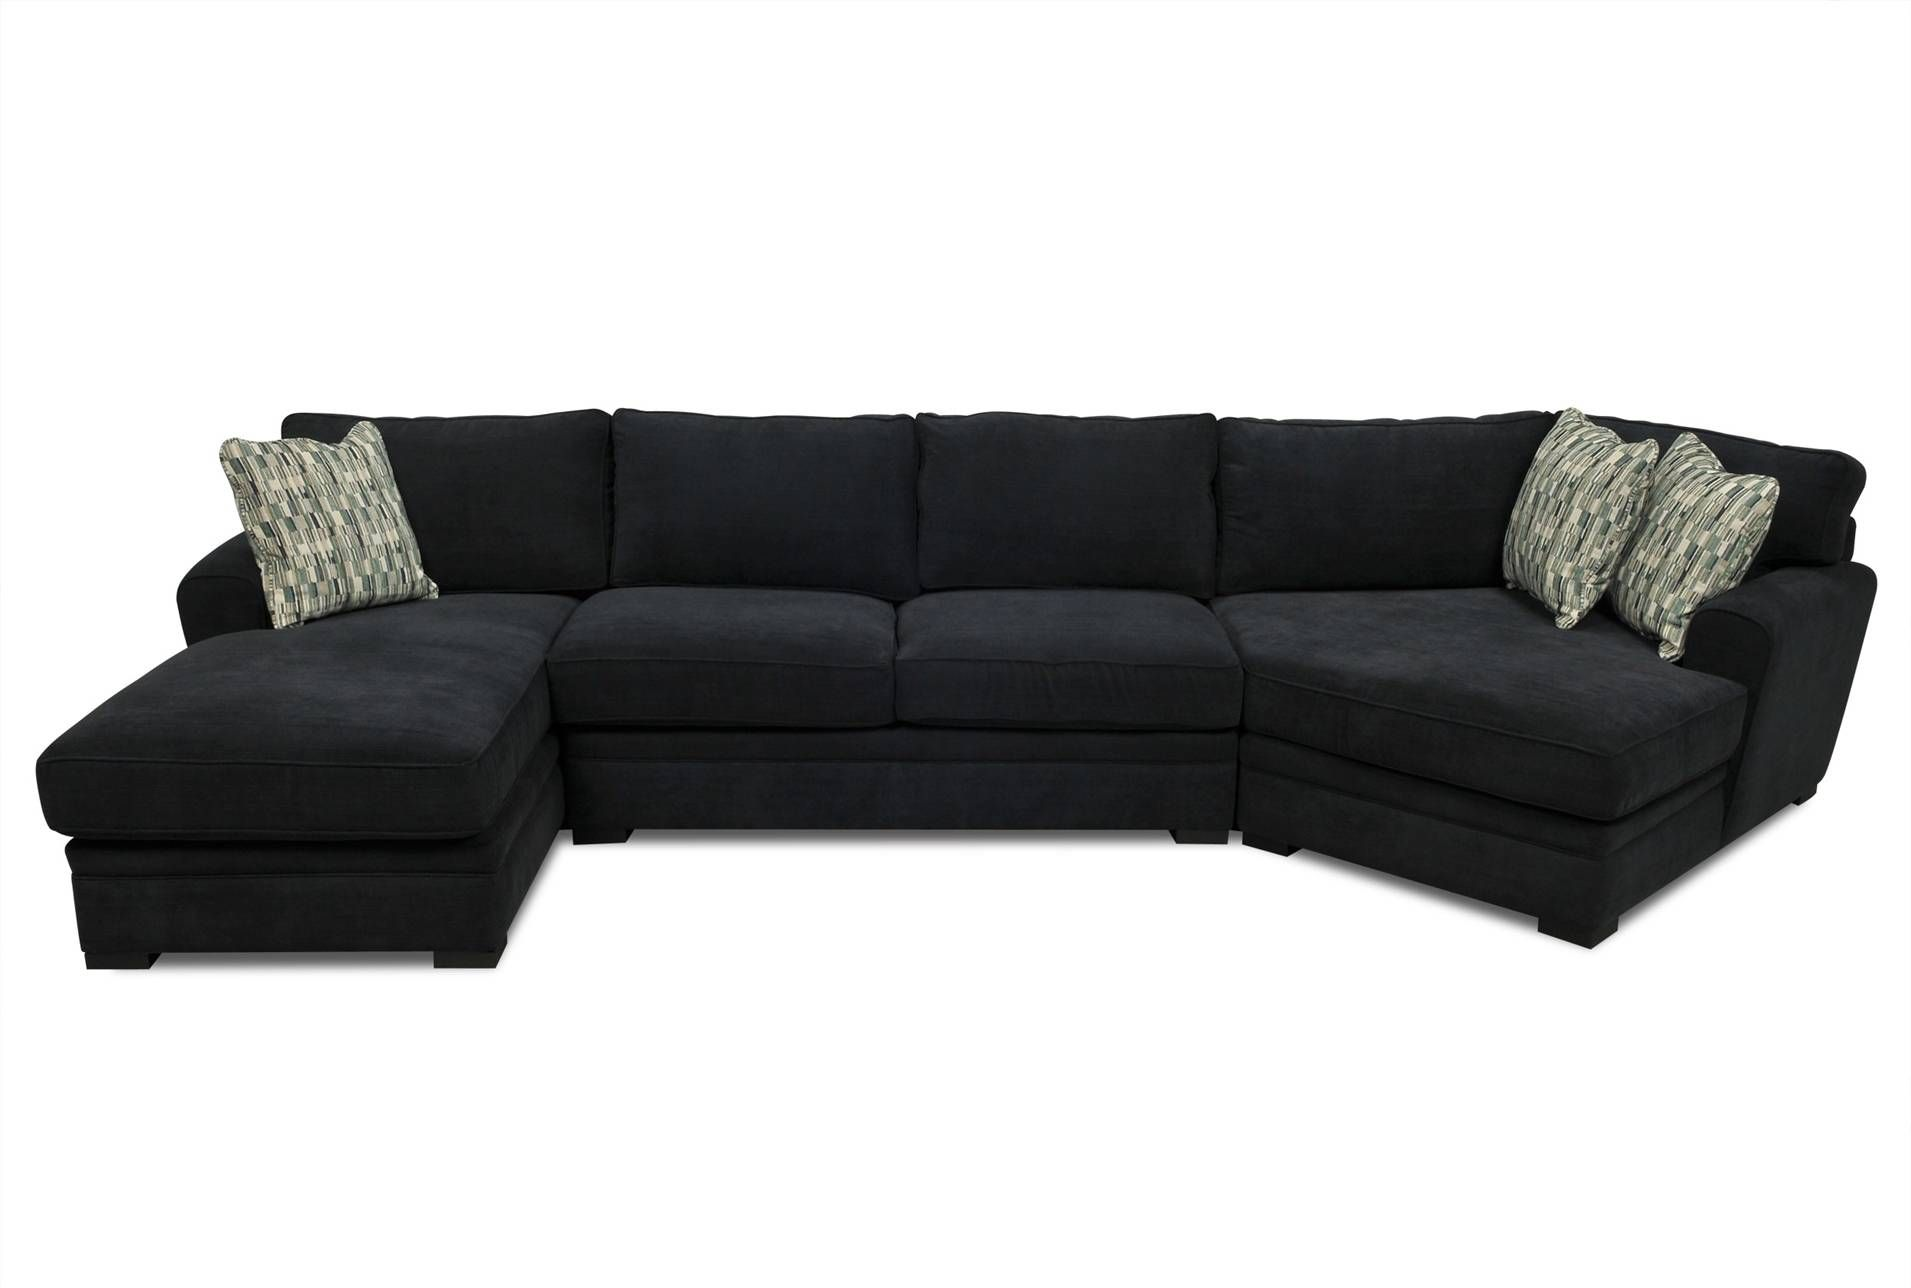 Aaron 3 Piece Sectional For The Home Living Room